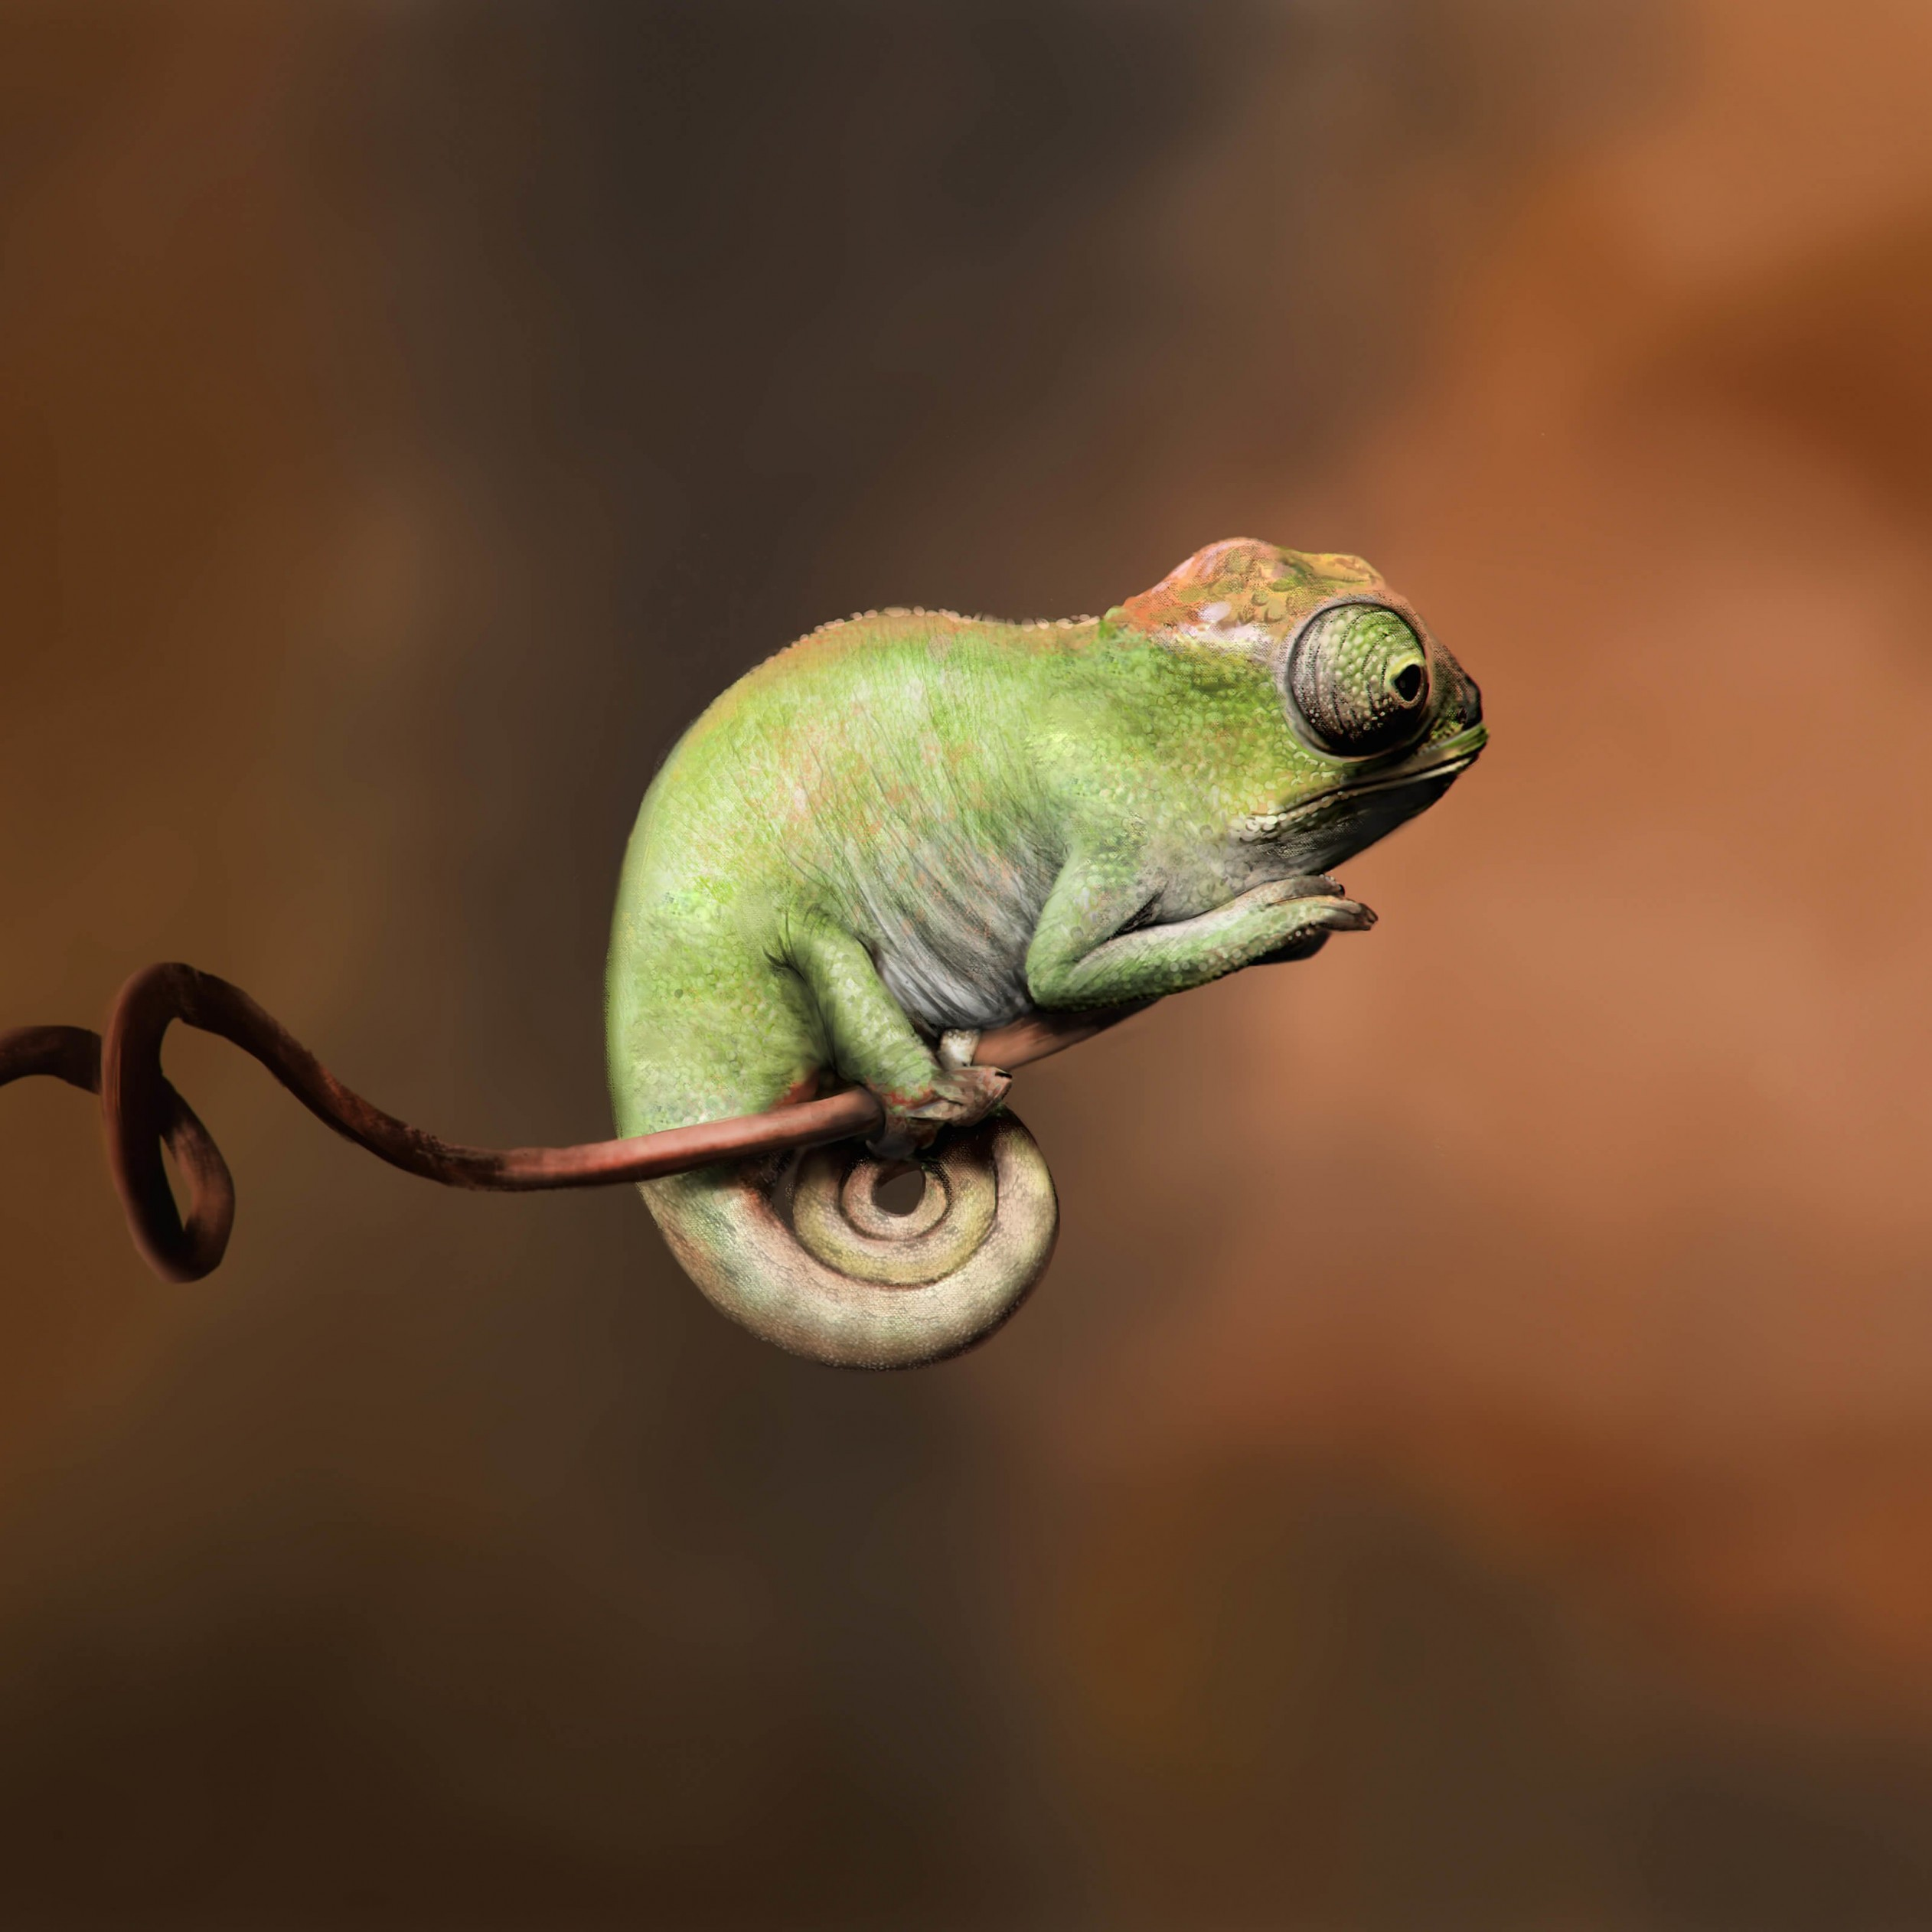 Baby Chameleon Perching On a Twisted Branch Wallpaper for Apple iPad mini 2